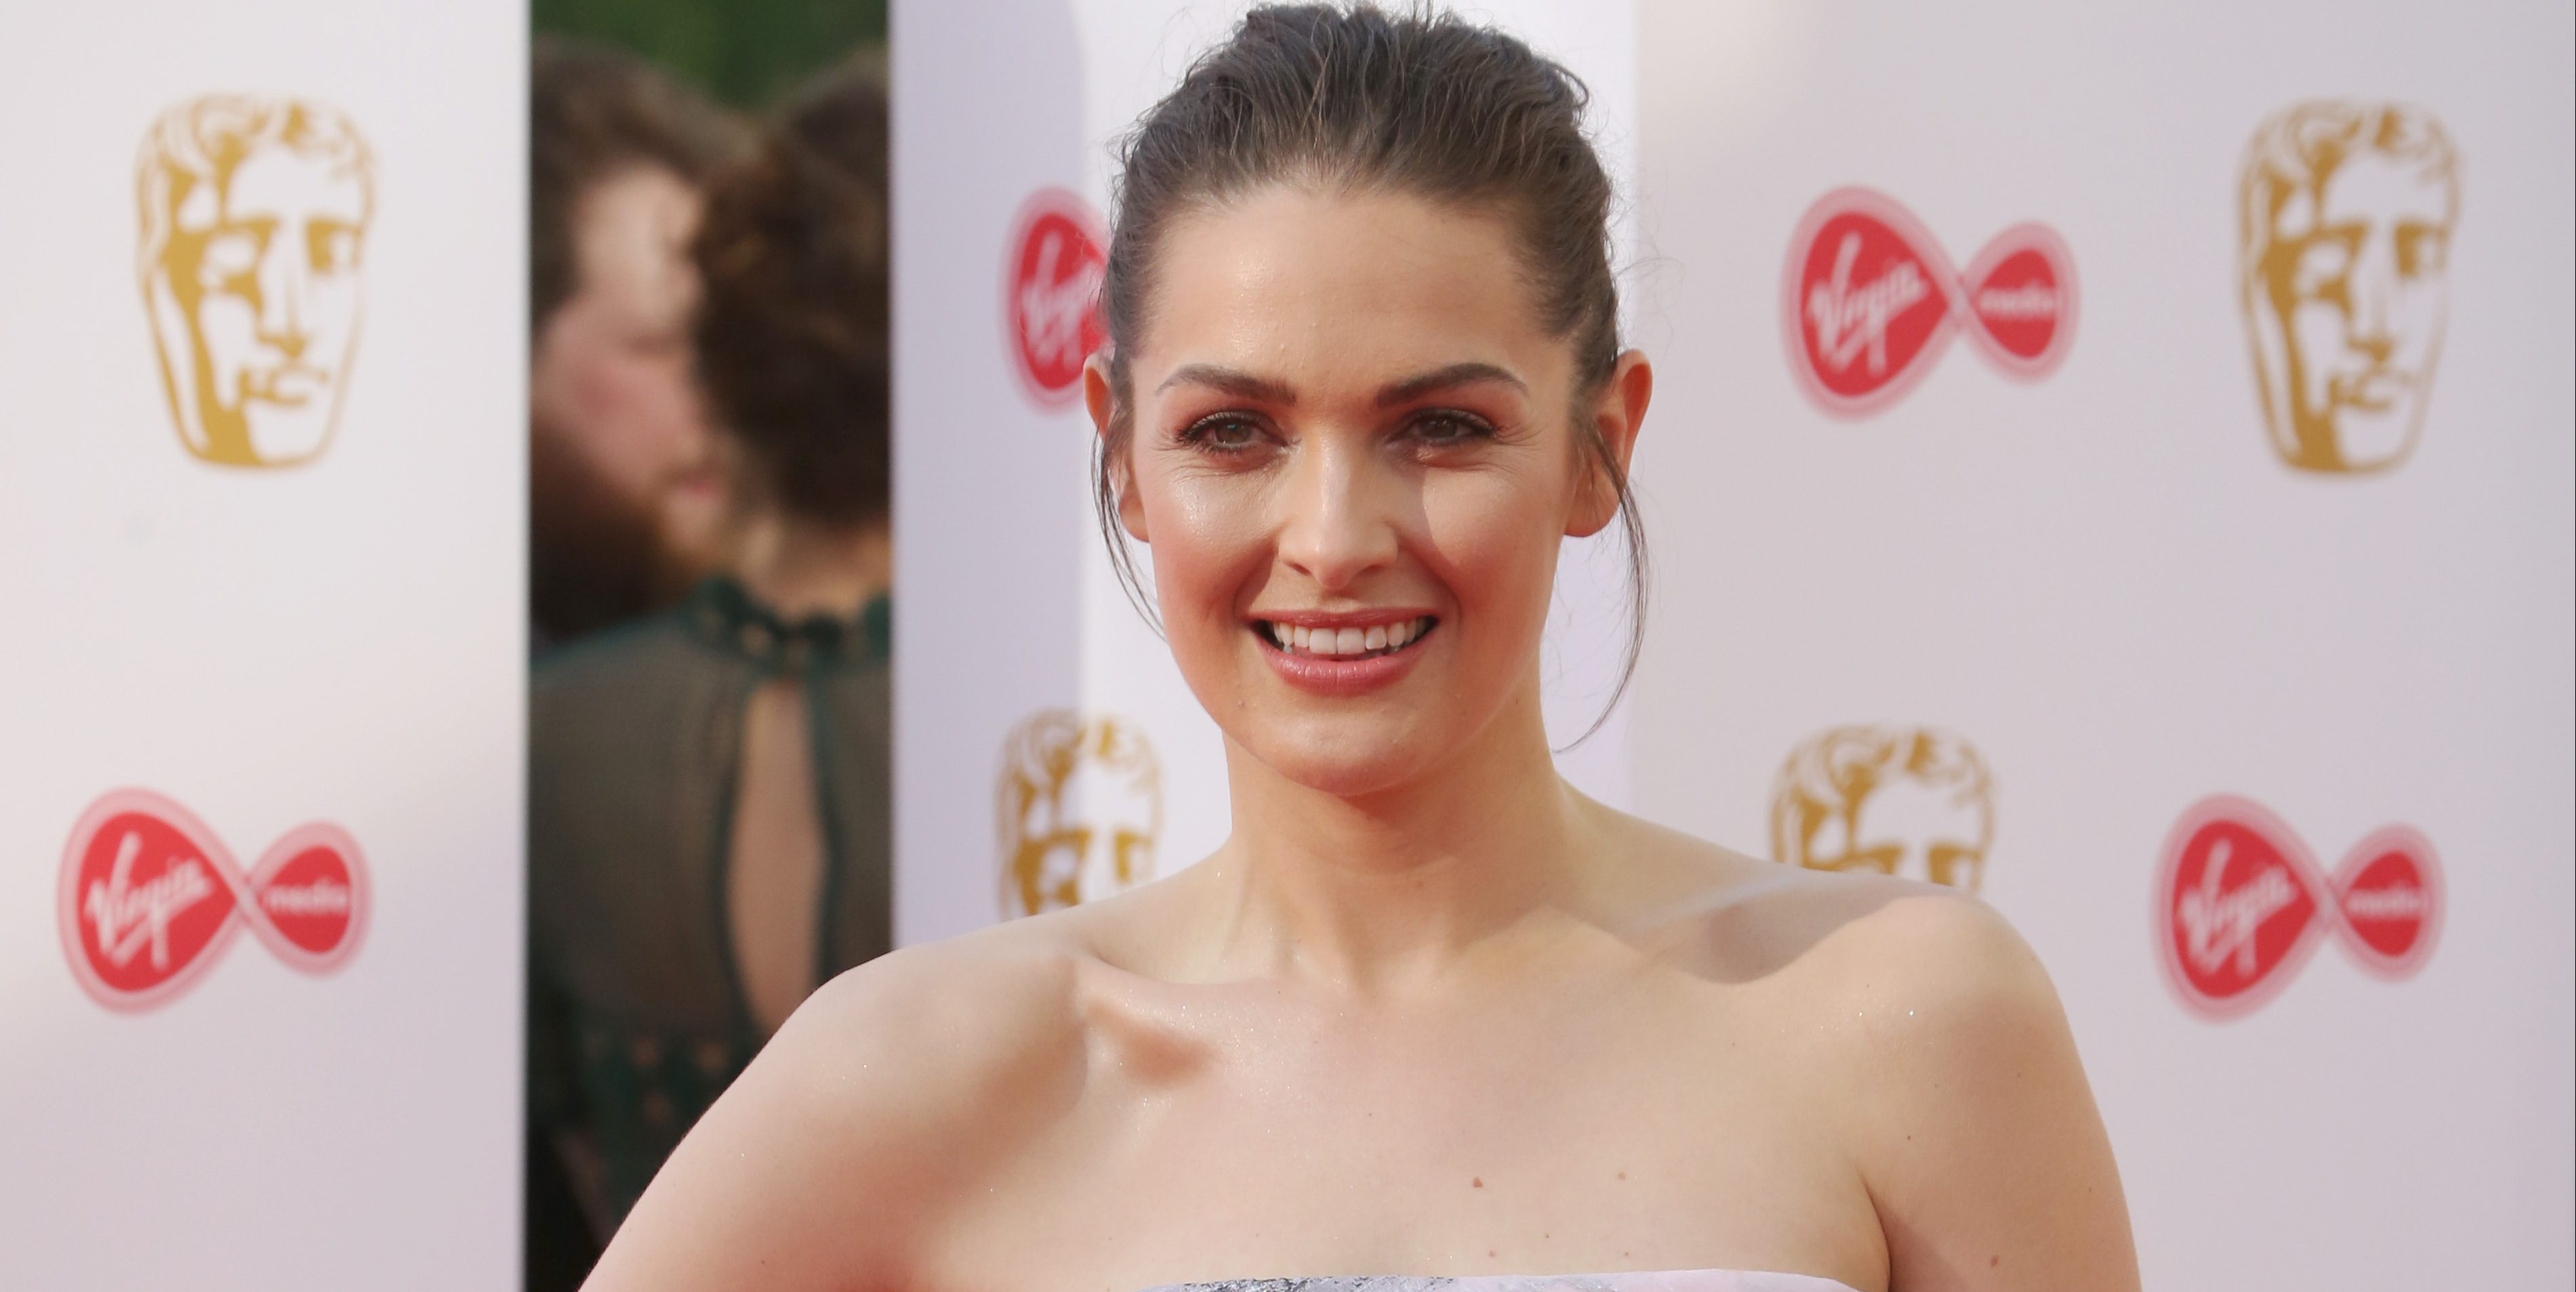 Hollyoaks' Anna Passey confirms romance with co-star Kyle Pryor